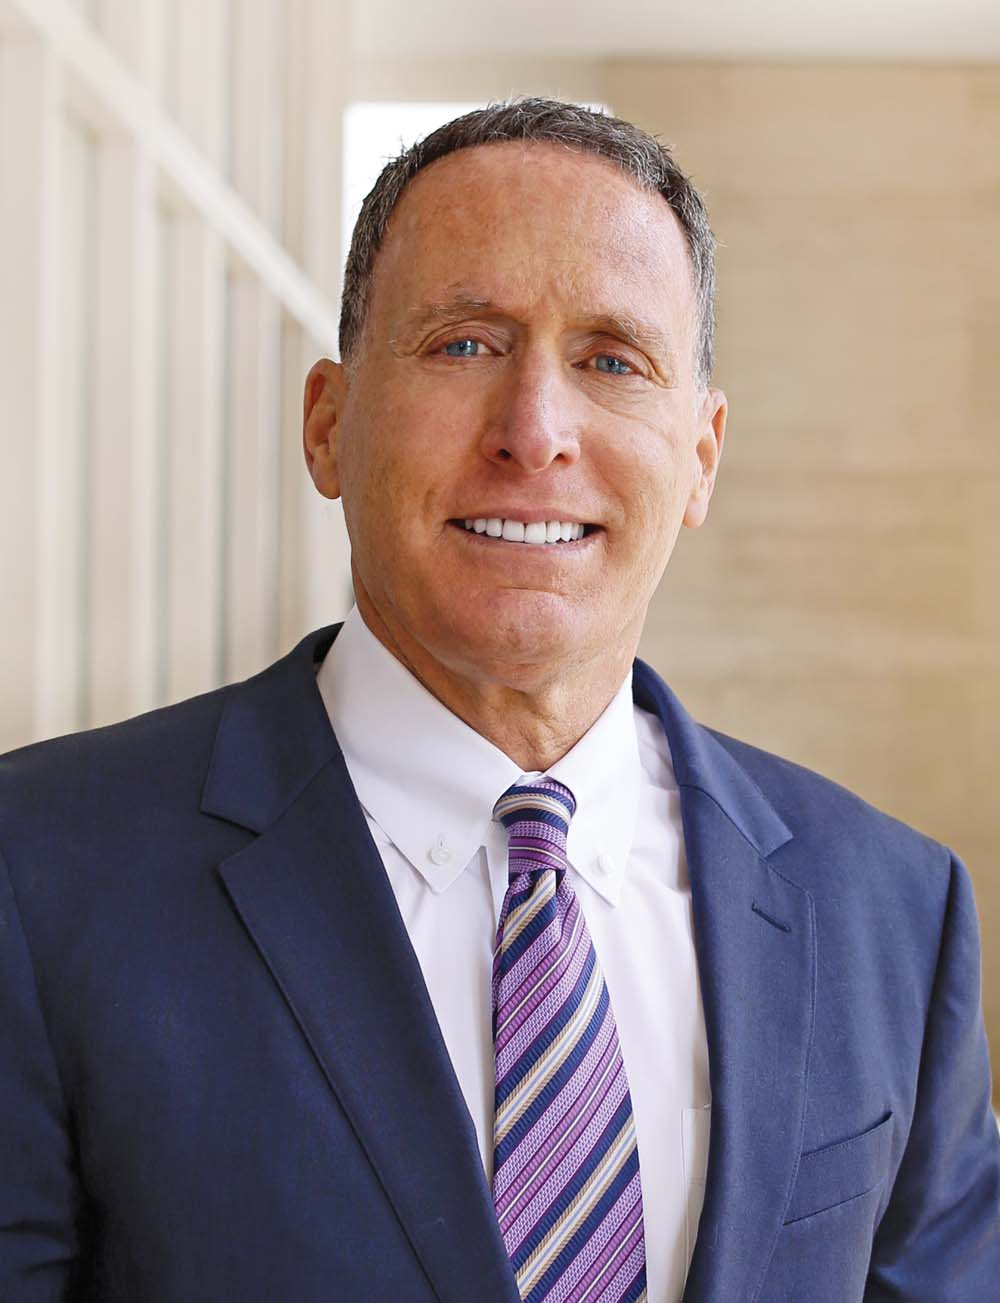 Robert K. Weinberg   Highly skilled former government prosecutor and trial lawyer that has successfully handled more than 5,000 cases and over 100 jury trials.  Robert is a recognized authority in criminal defense and professional licensing defense. Fluent in spanish, italian, hebrew, portuguese.